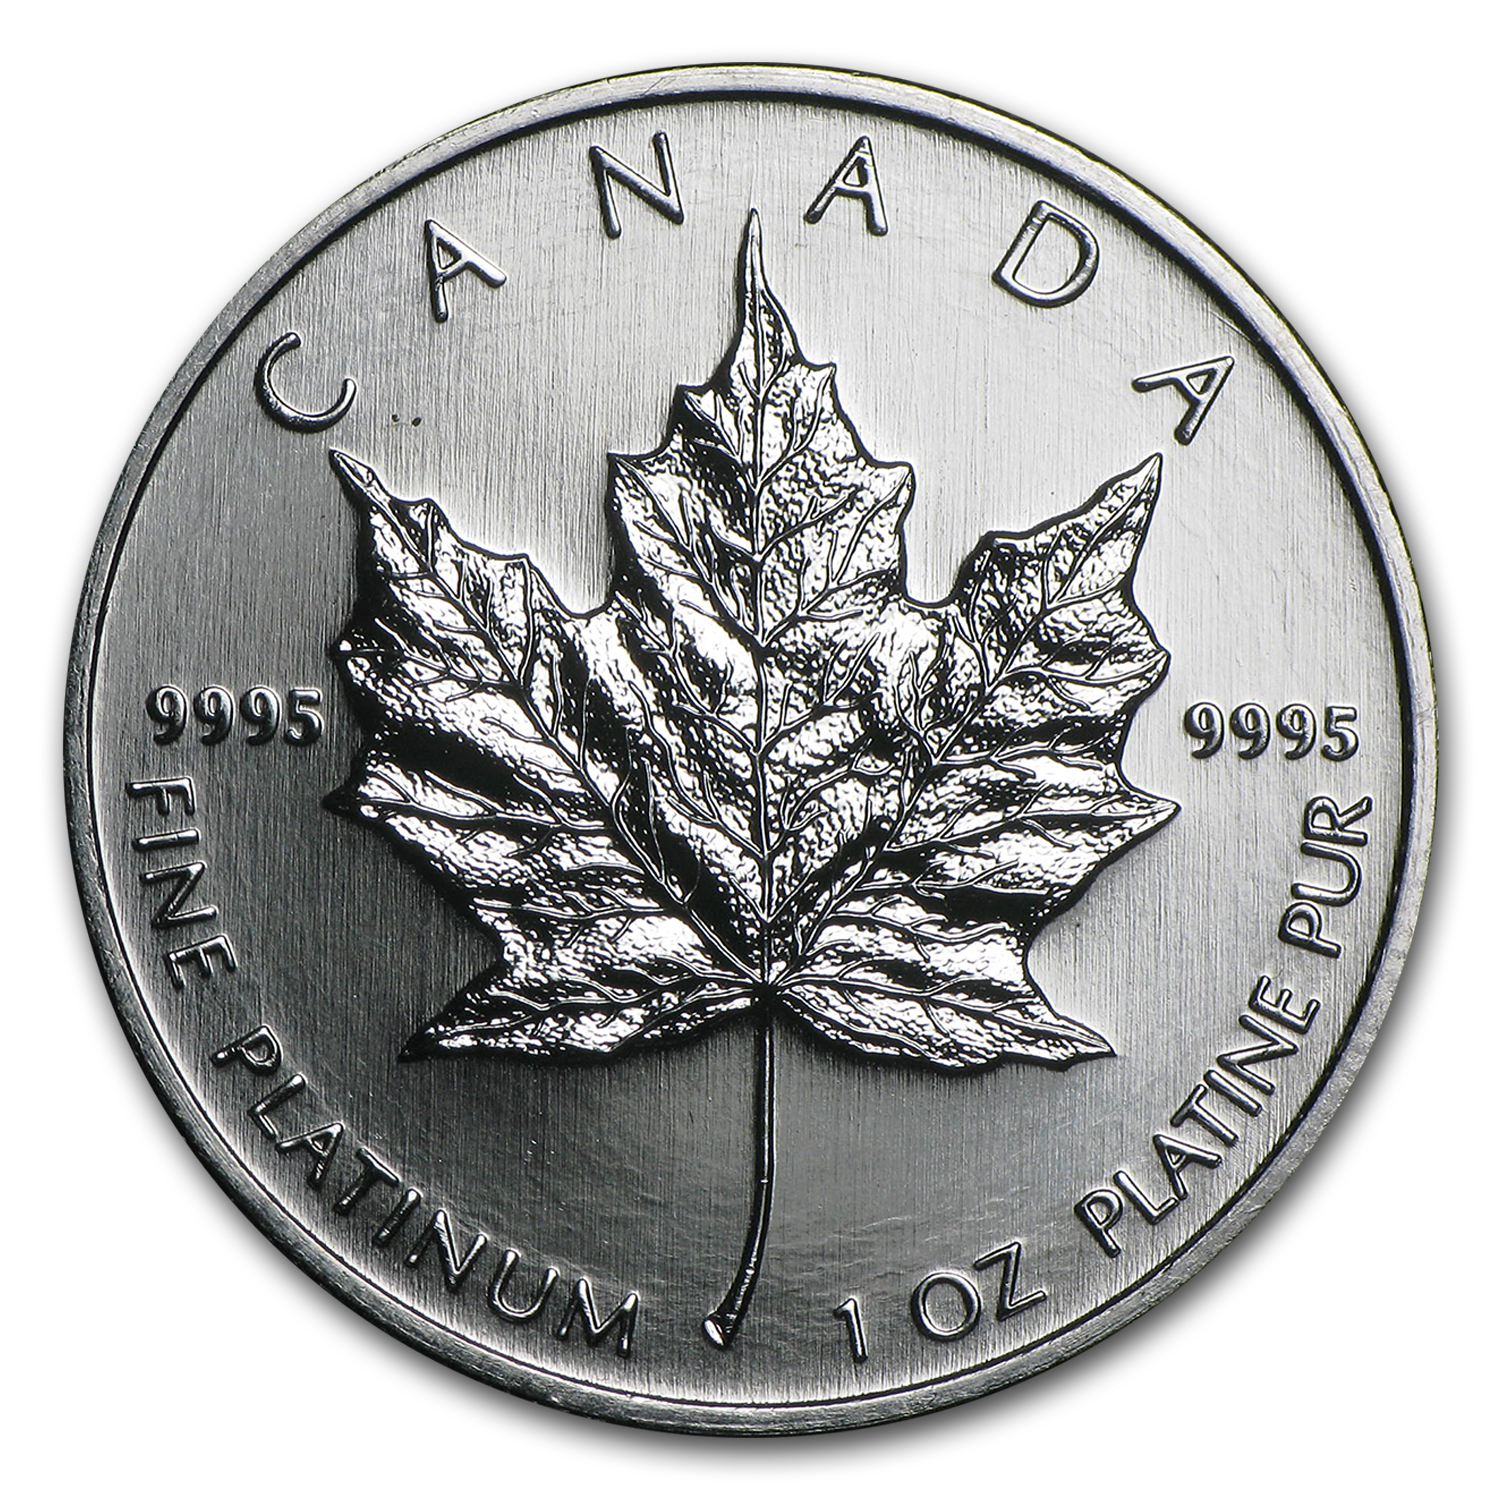 2009 1 oz Canadian Platinum Maple Leaf BU